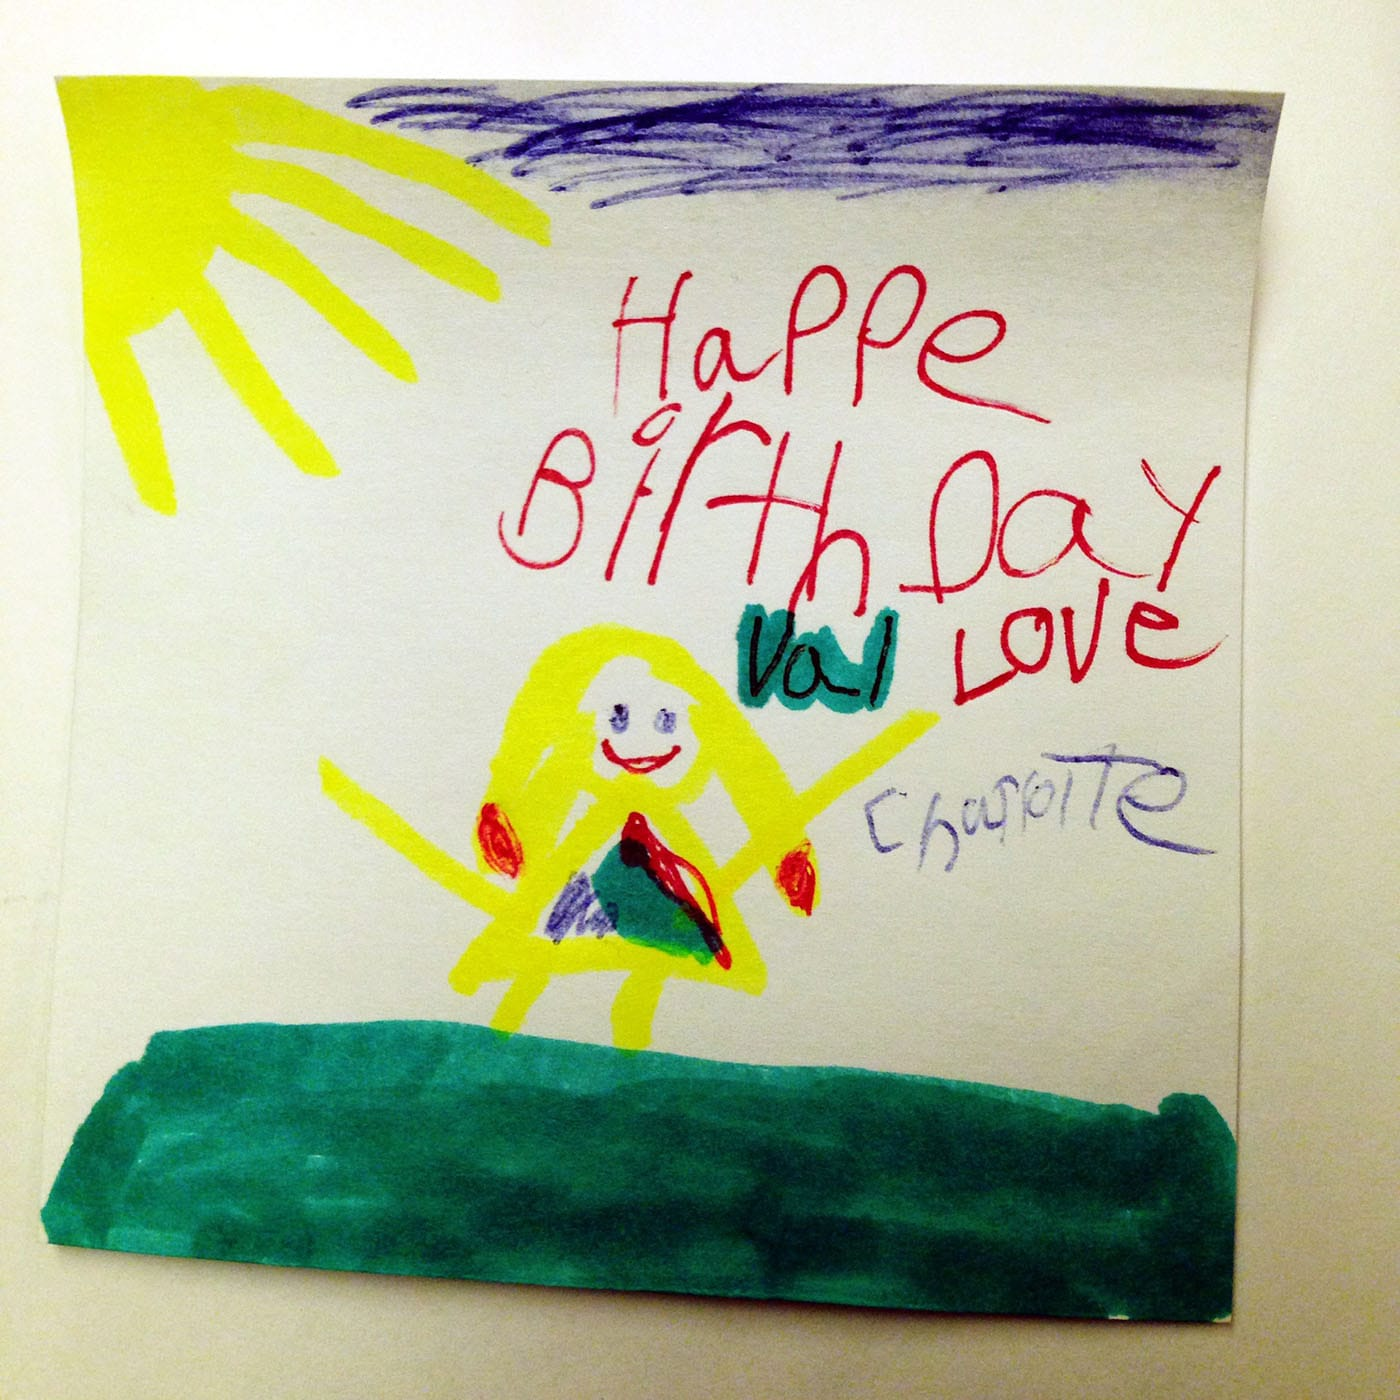 Birthday note from a 6 year old